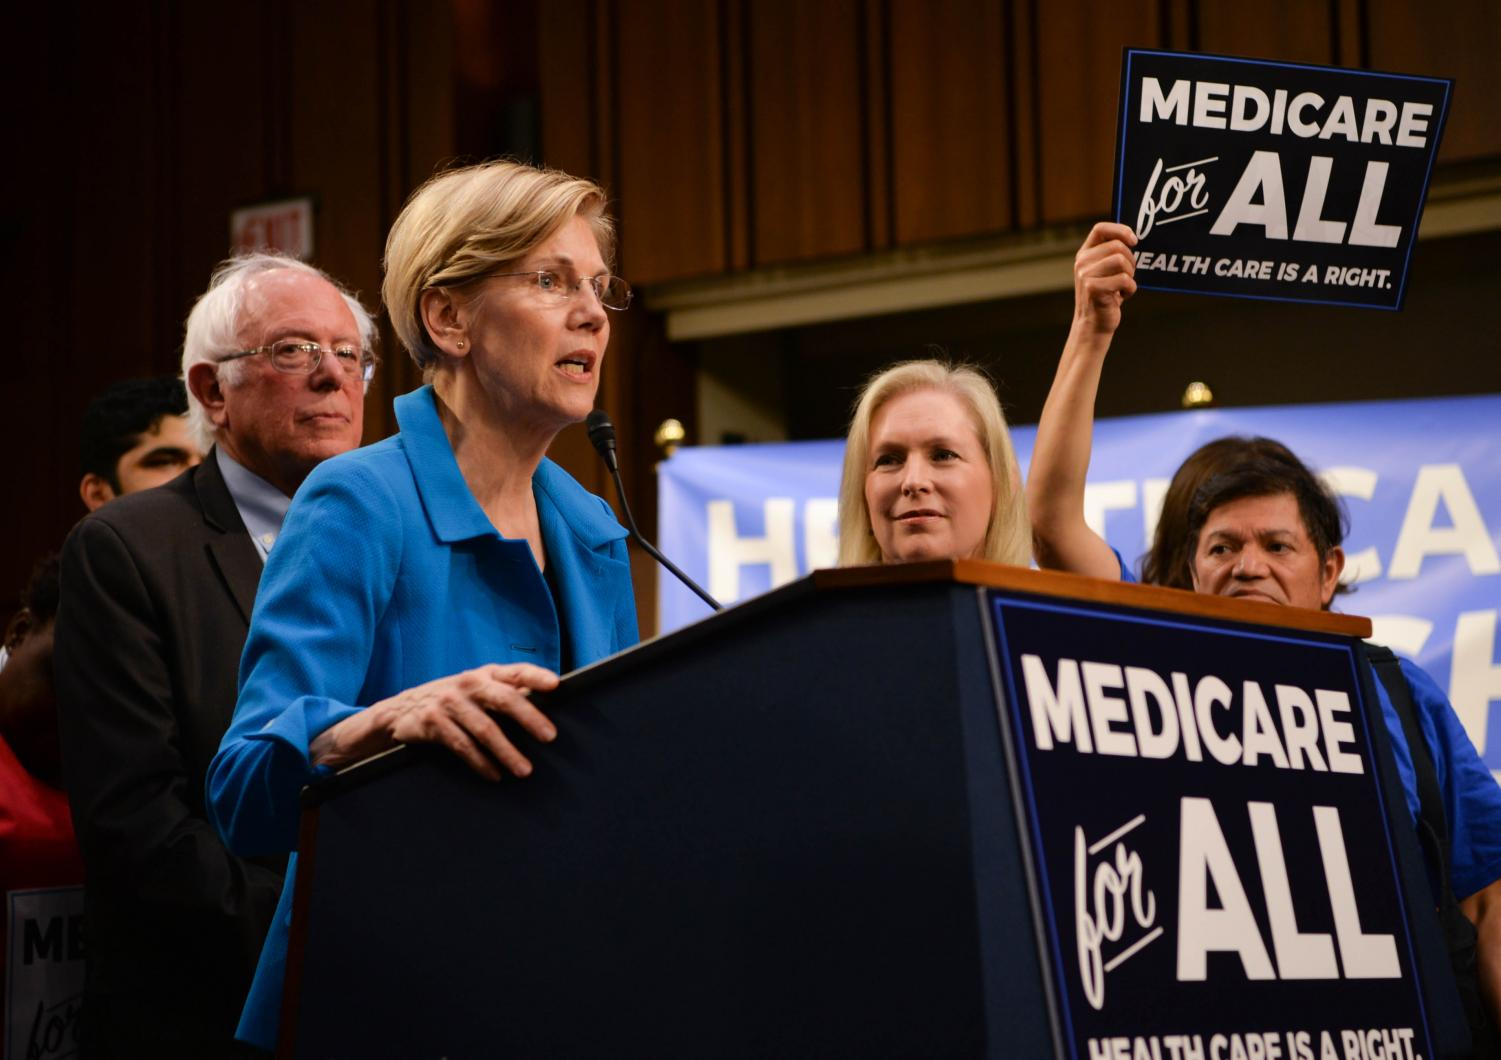 Democratic Senators speak in support of Medicare-for-All. Senator Bernie Sanders (I-VT) announced his Medicare-for-All bill Sept. 13, 2017. Presidential Candidate Senator Elizabeth Warren (D-MA) voiced her support  for the legislation.